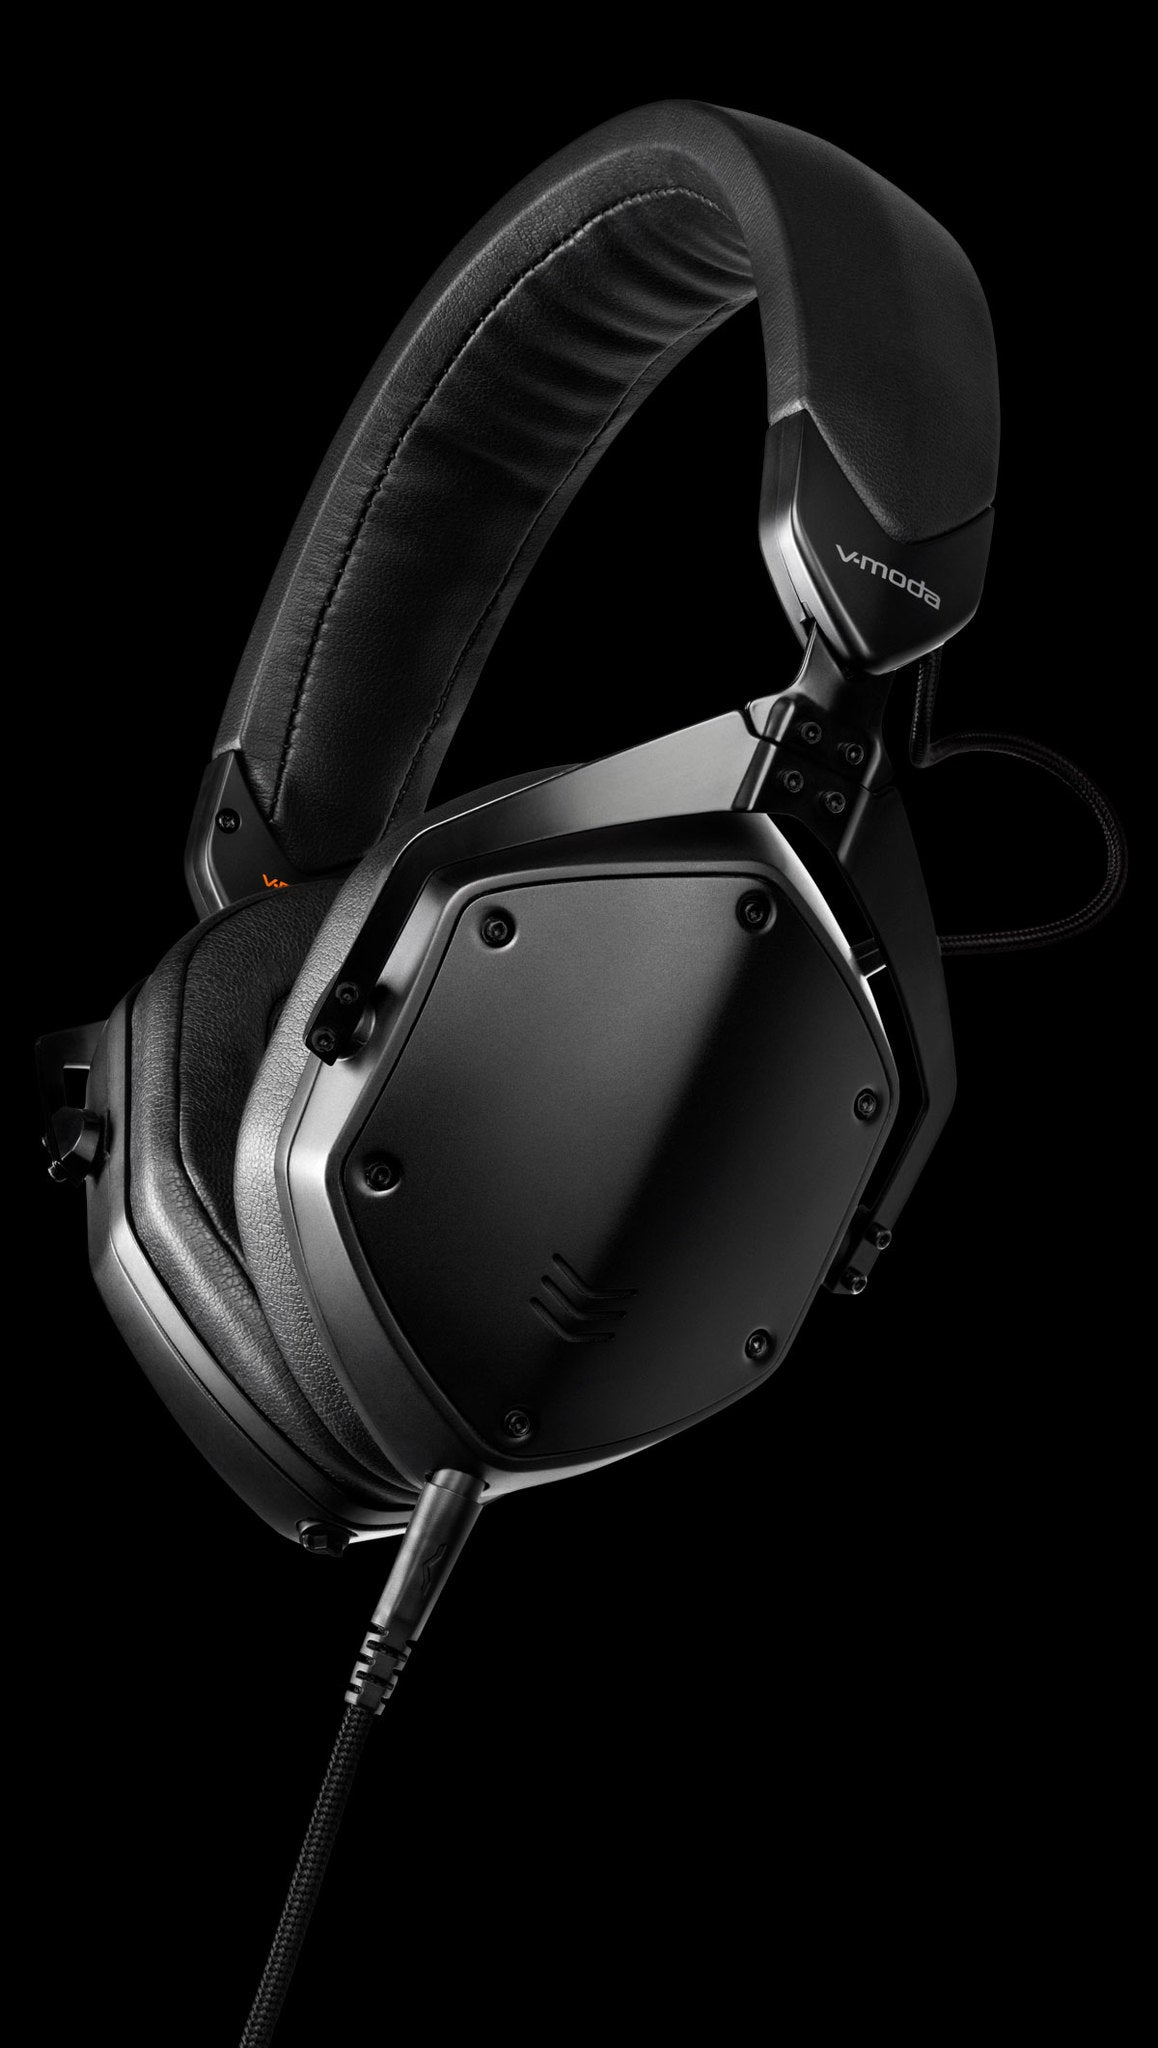 V-Moda Crossfade M-200 Around-Ear Headphones